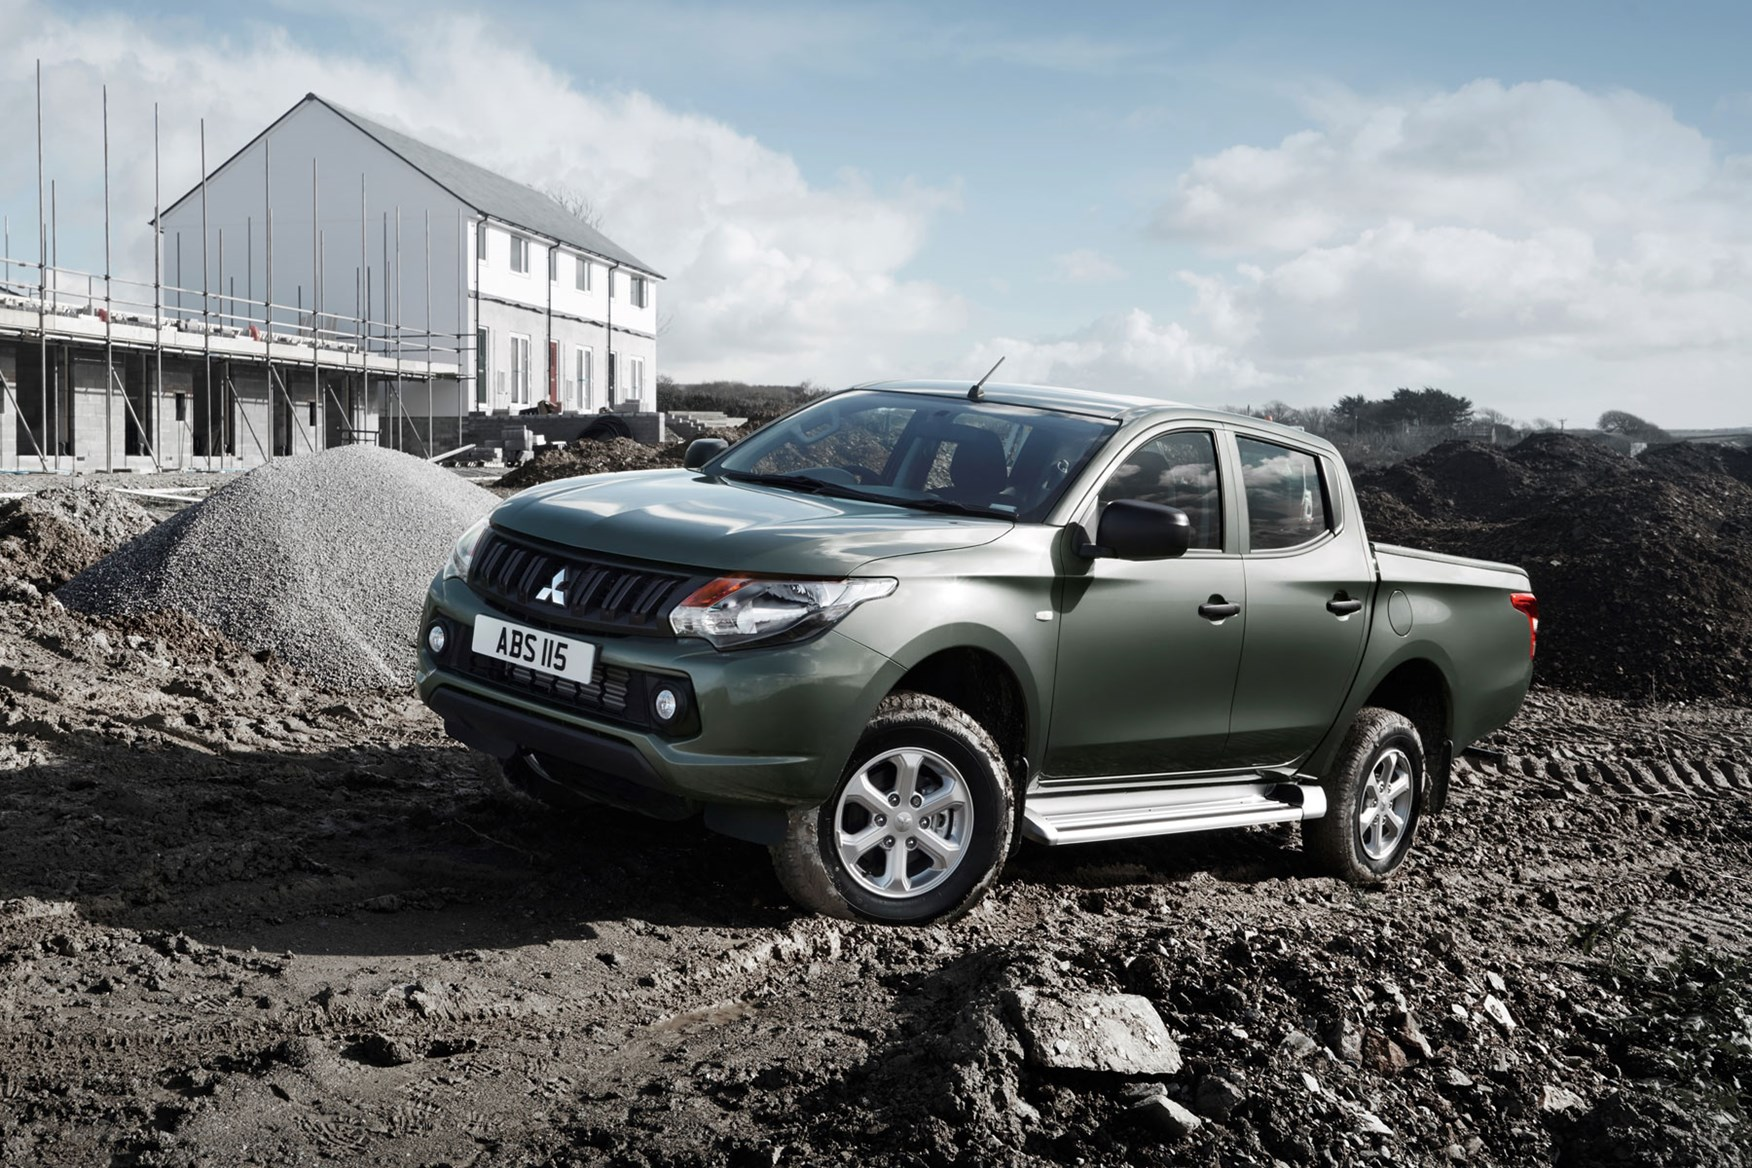 Mitsubishi L200 review, Double Cab, grey, front view